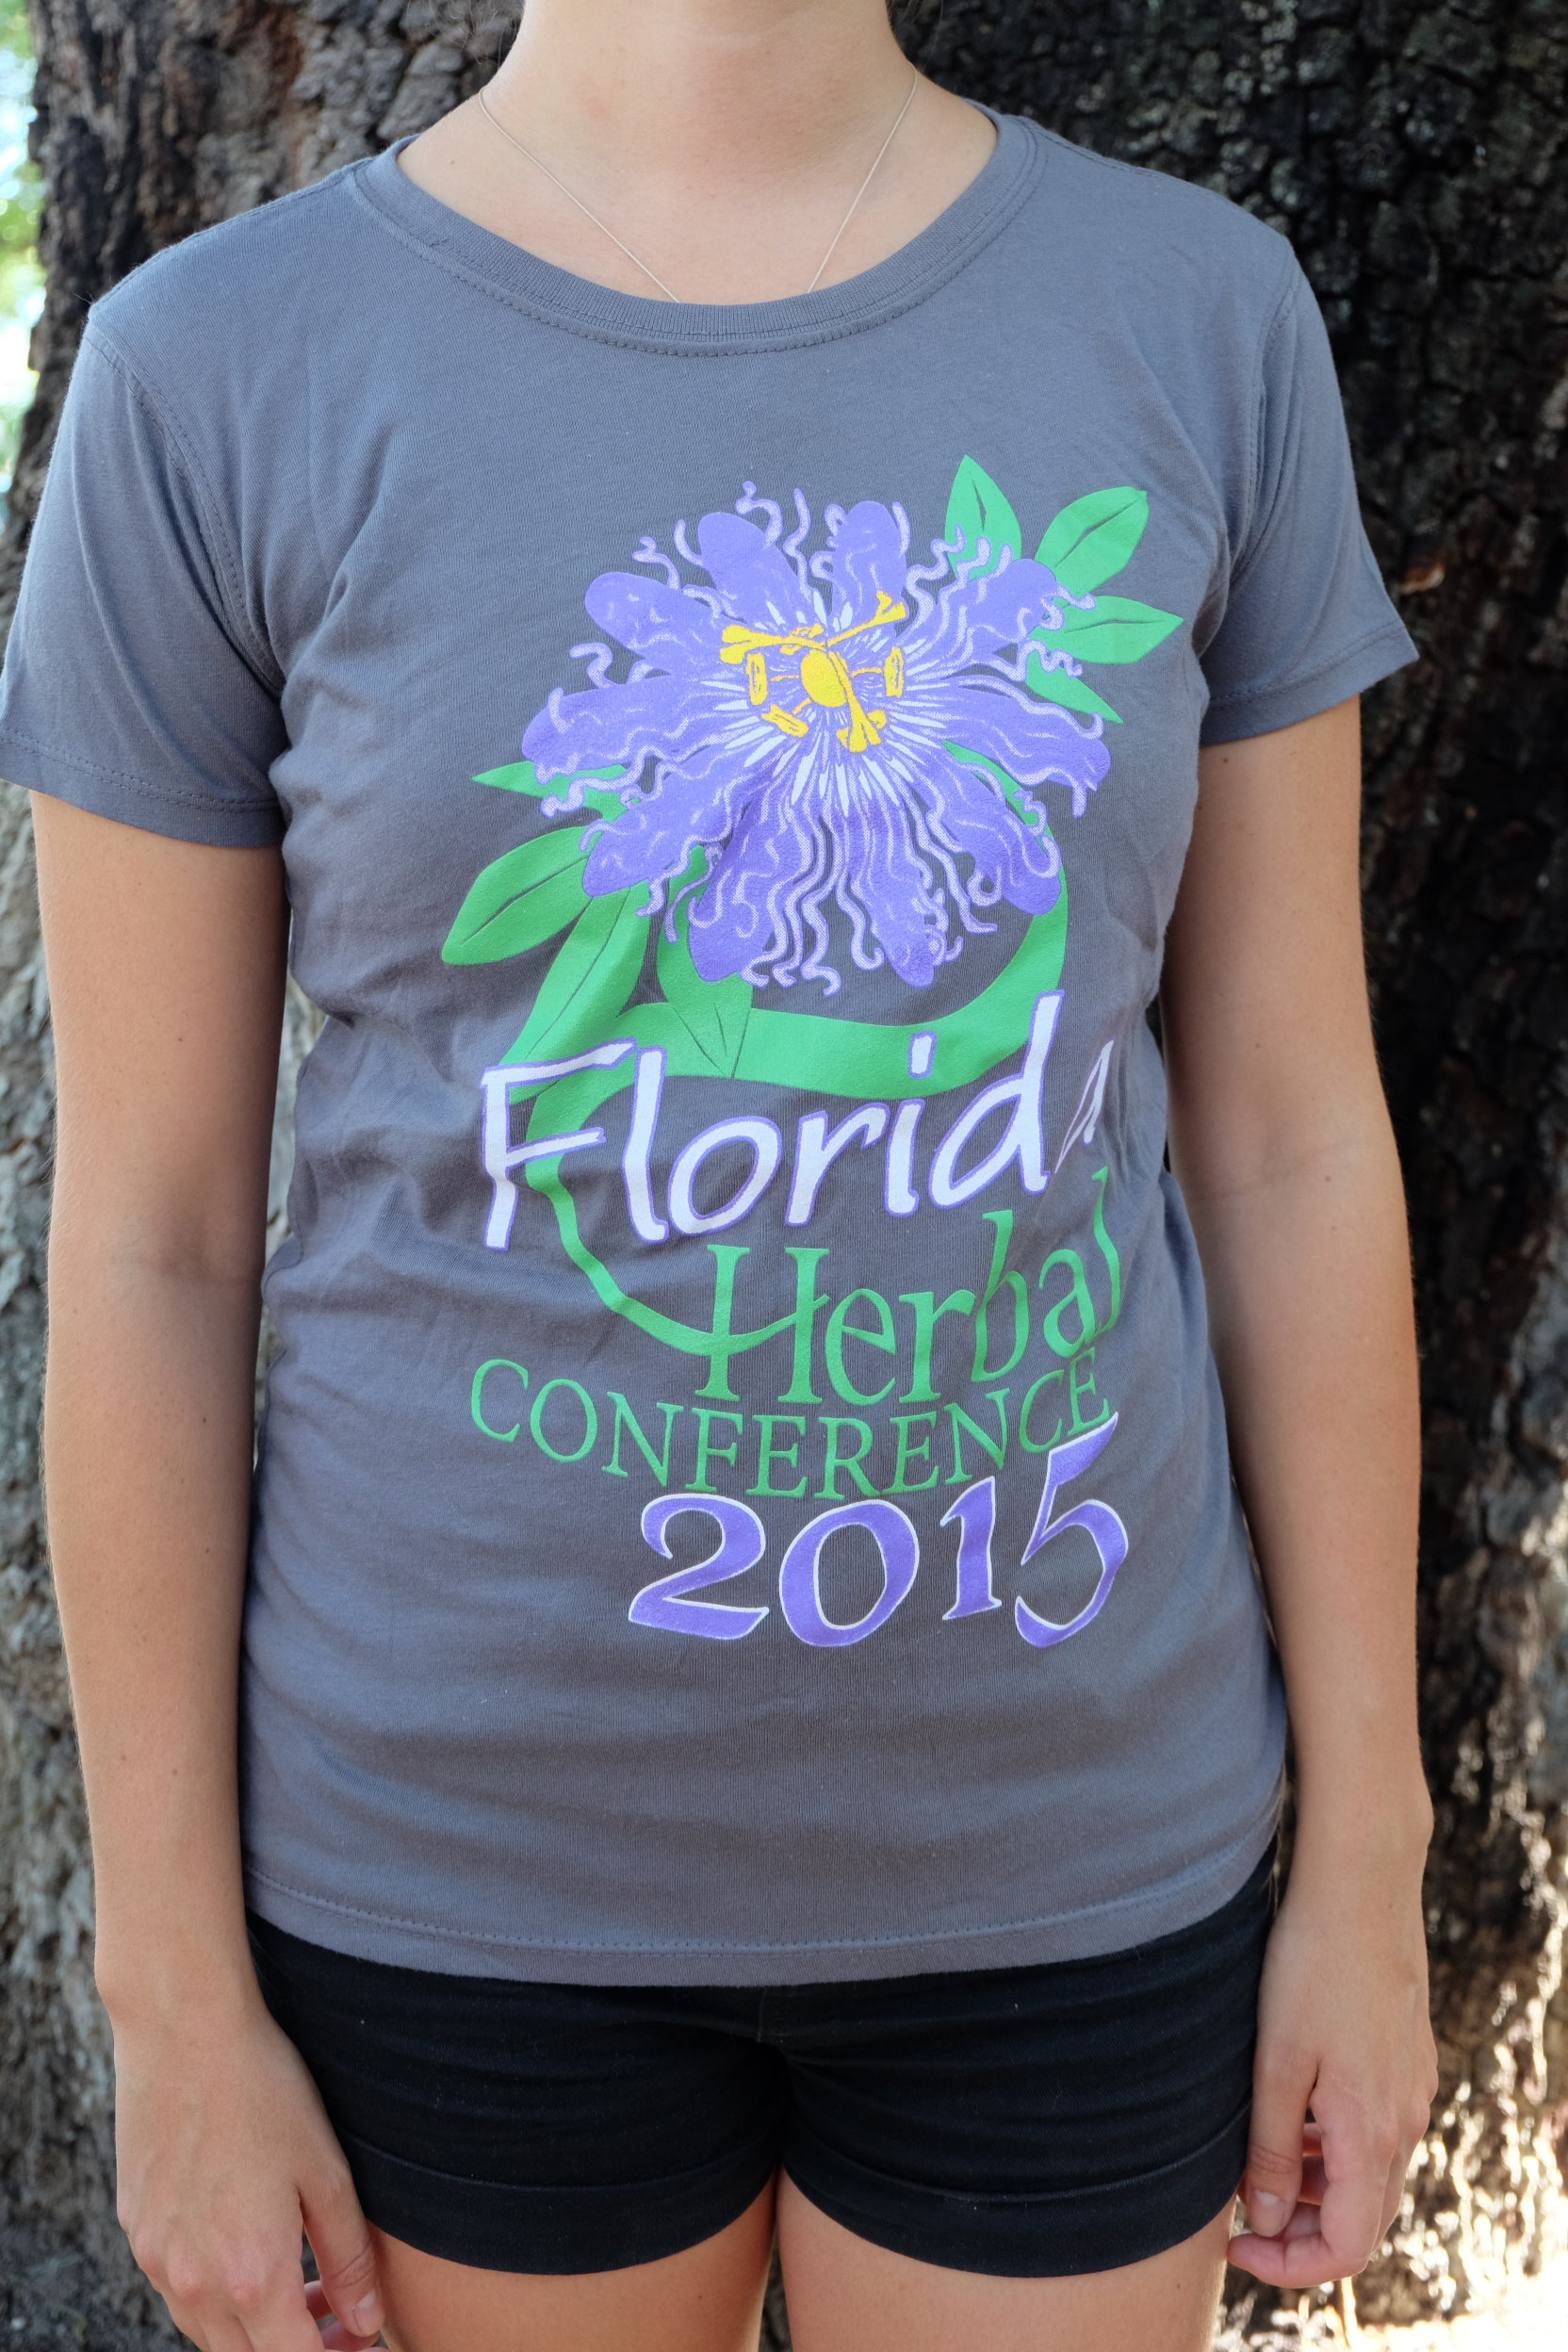 2015 Florida Herbal Conference Tee Shirt 00029